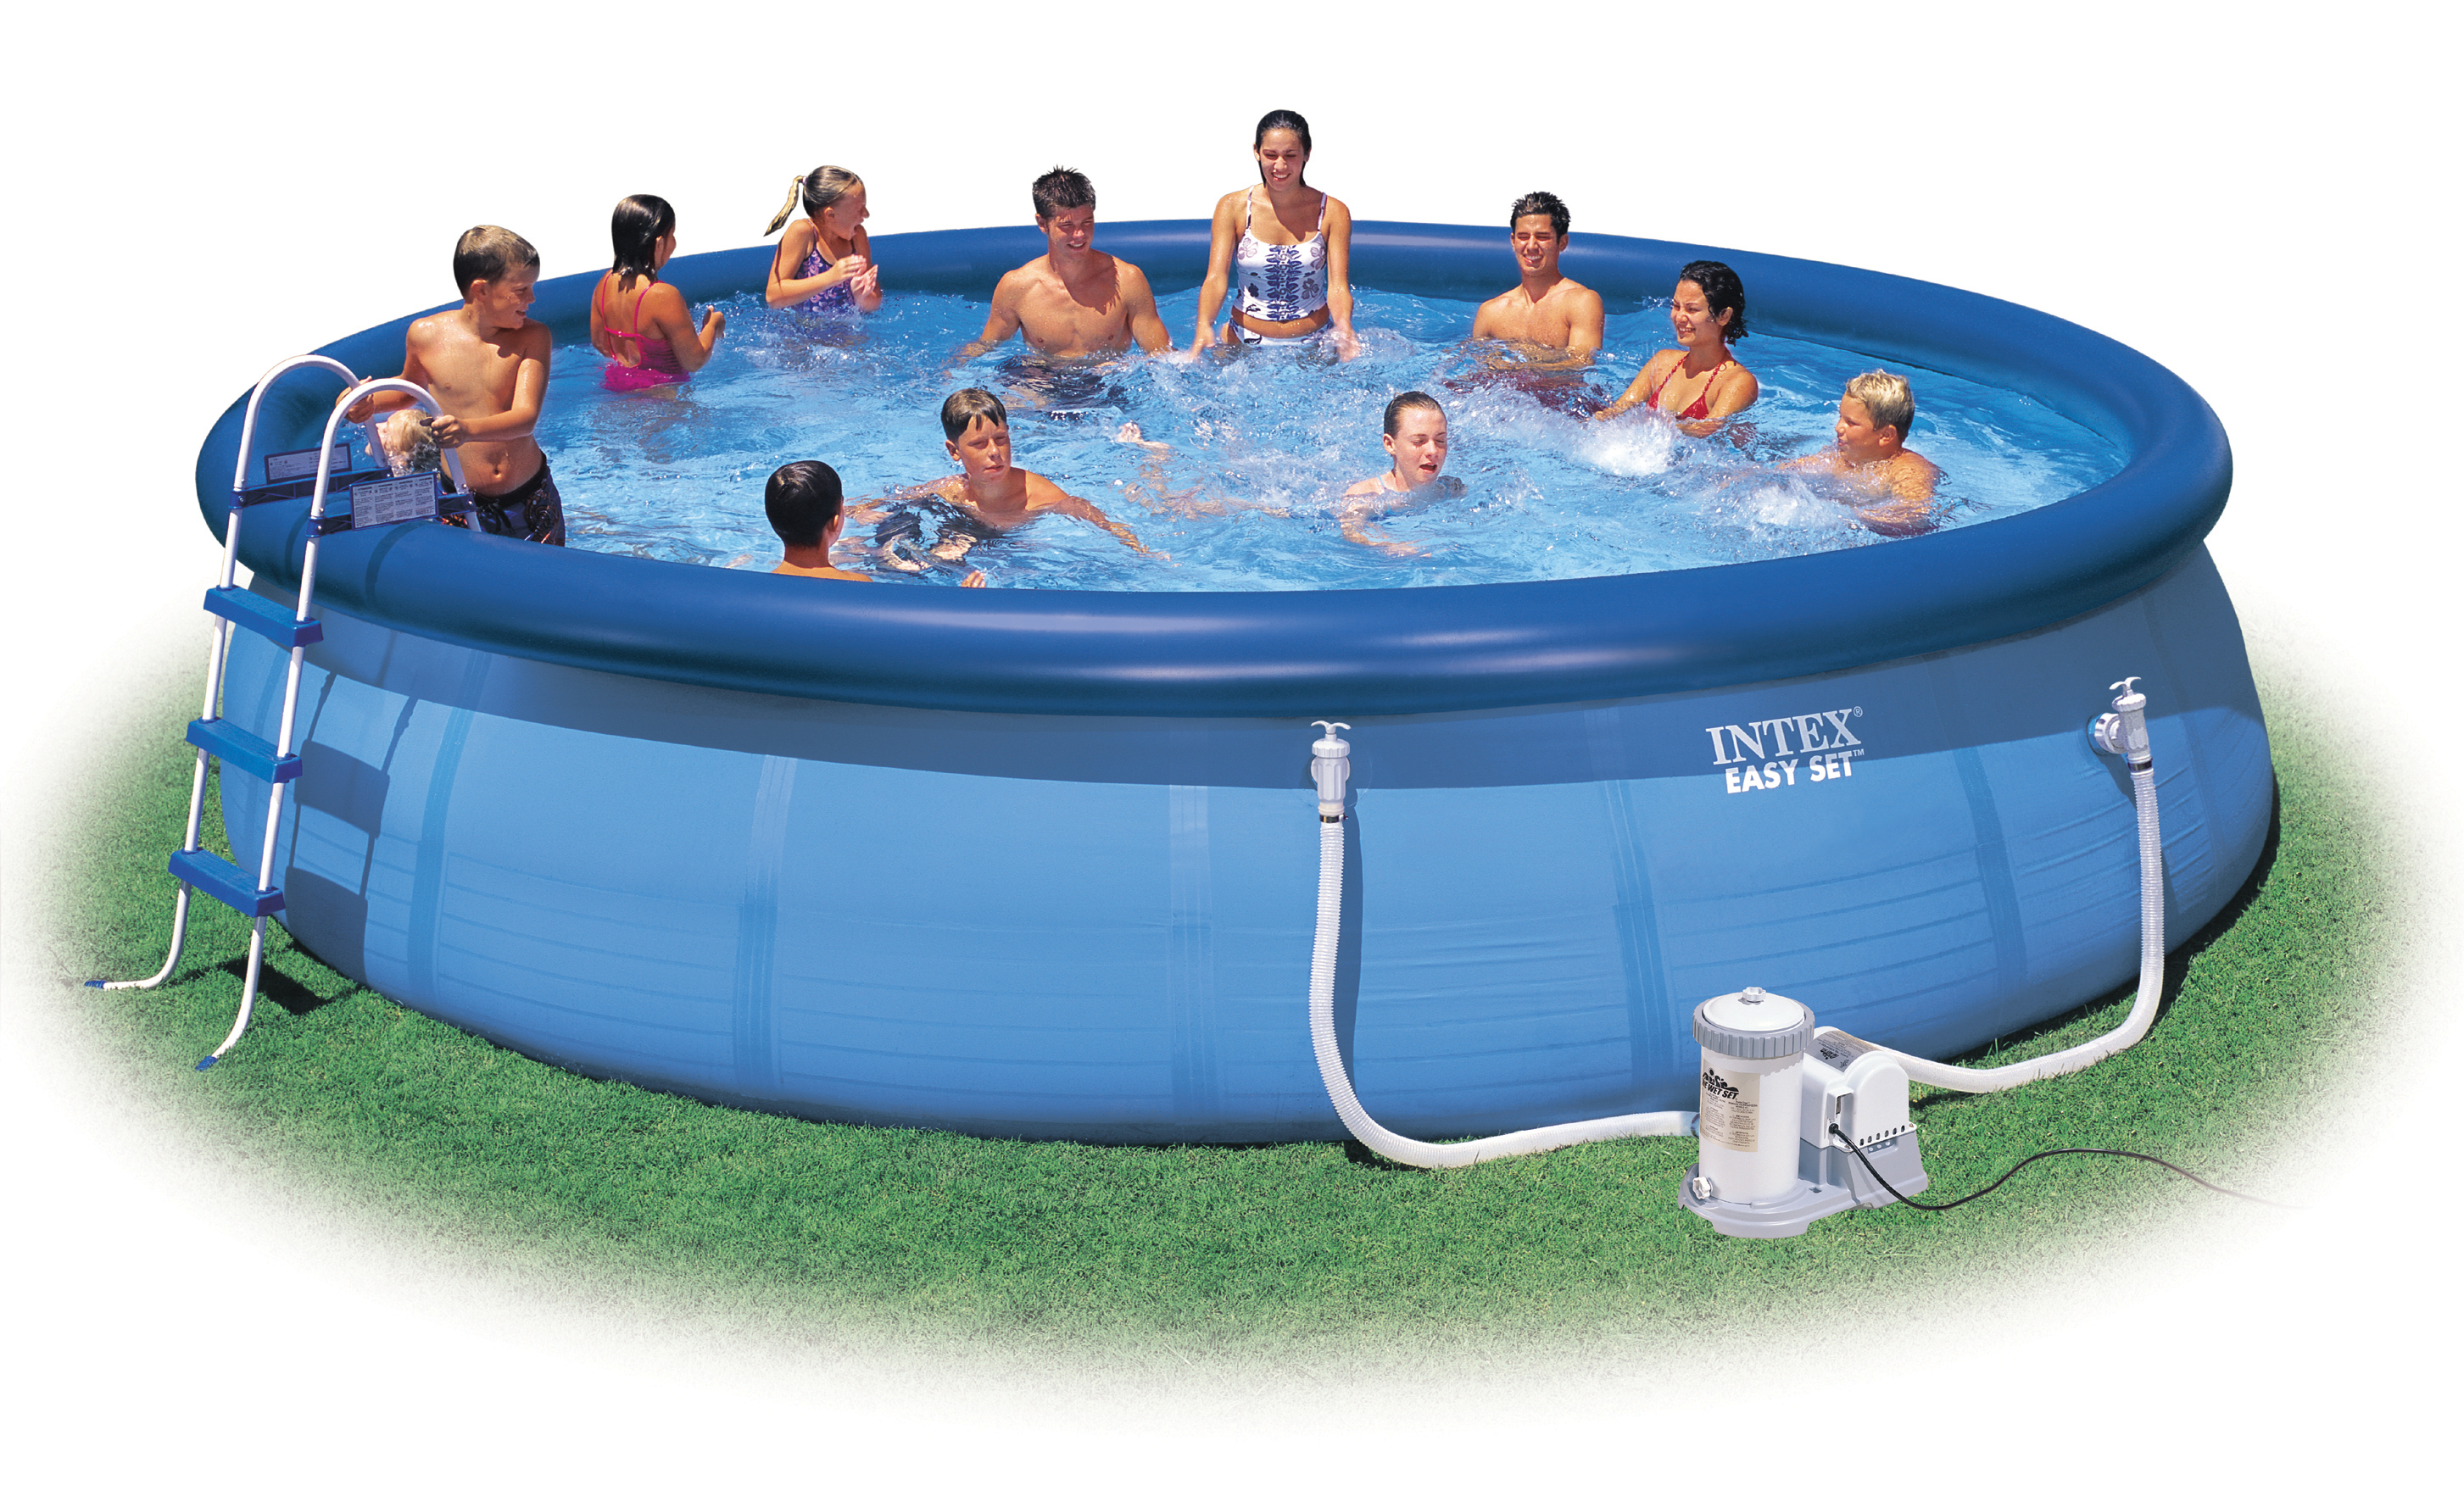 Pool Filteranlage Amazon Easy Pool Set Schwimmbad Und Saunen